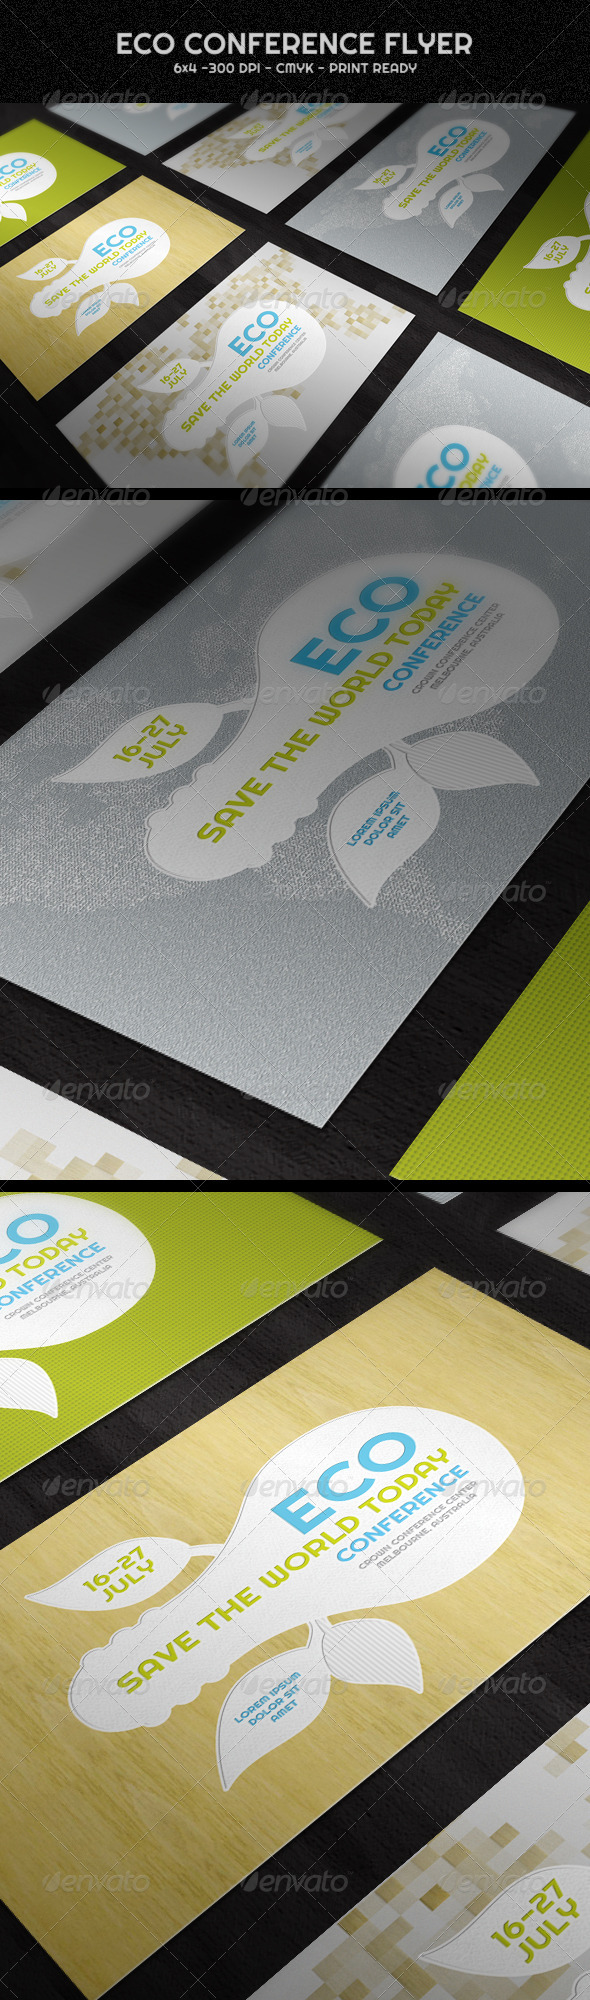 GraphicRiver Eco Conference Flyer 1579725